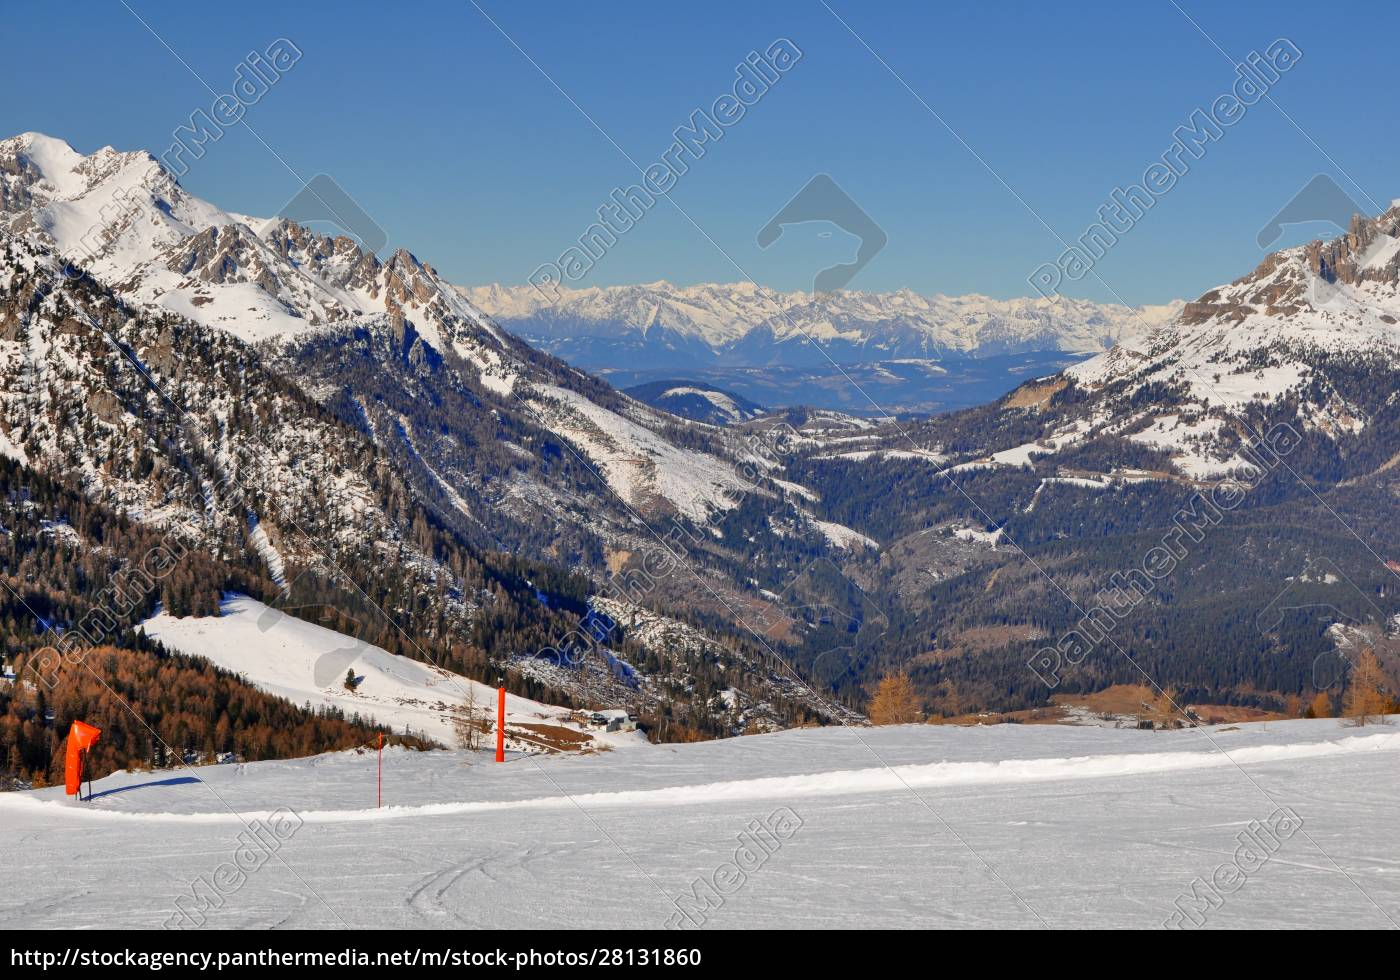 skiing, insouthern, tyrol - 28131860